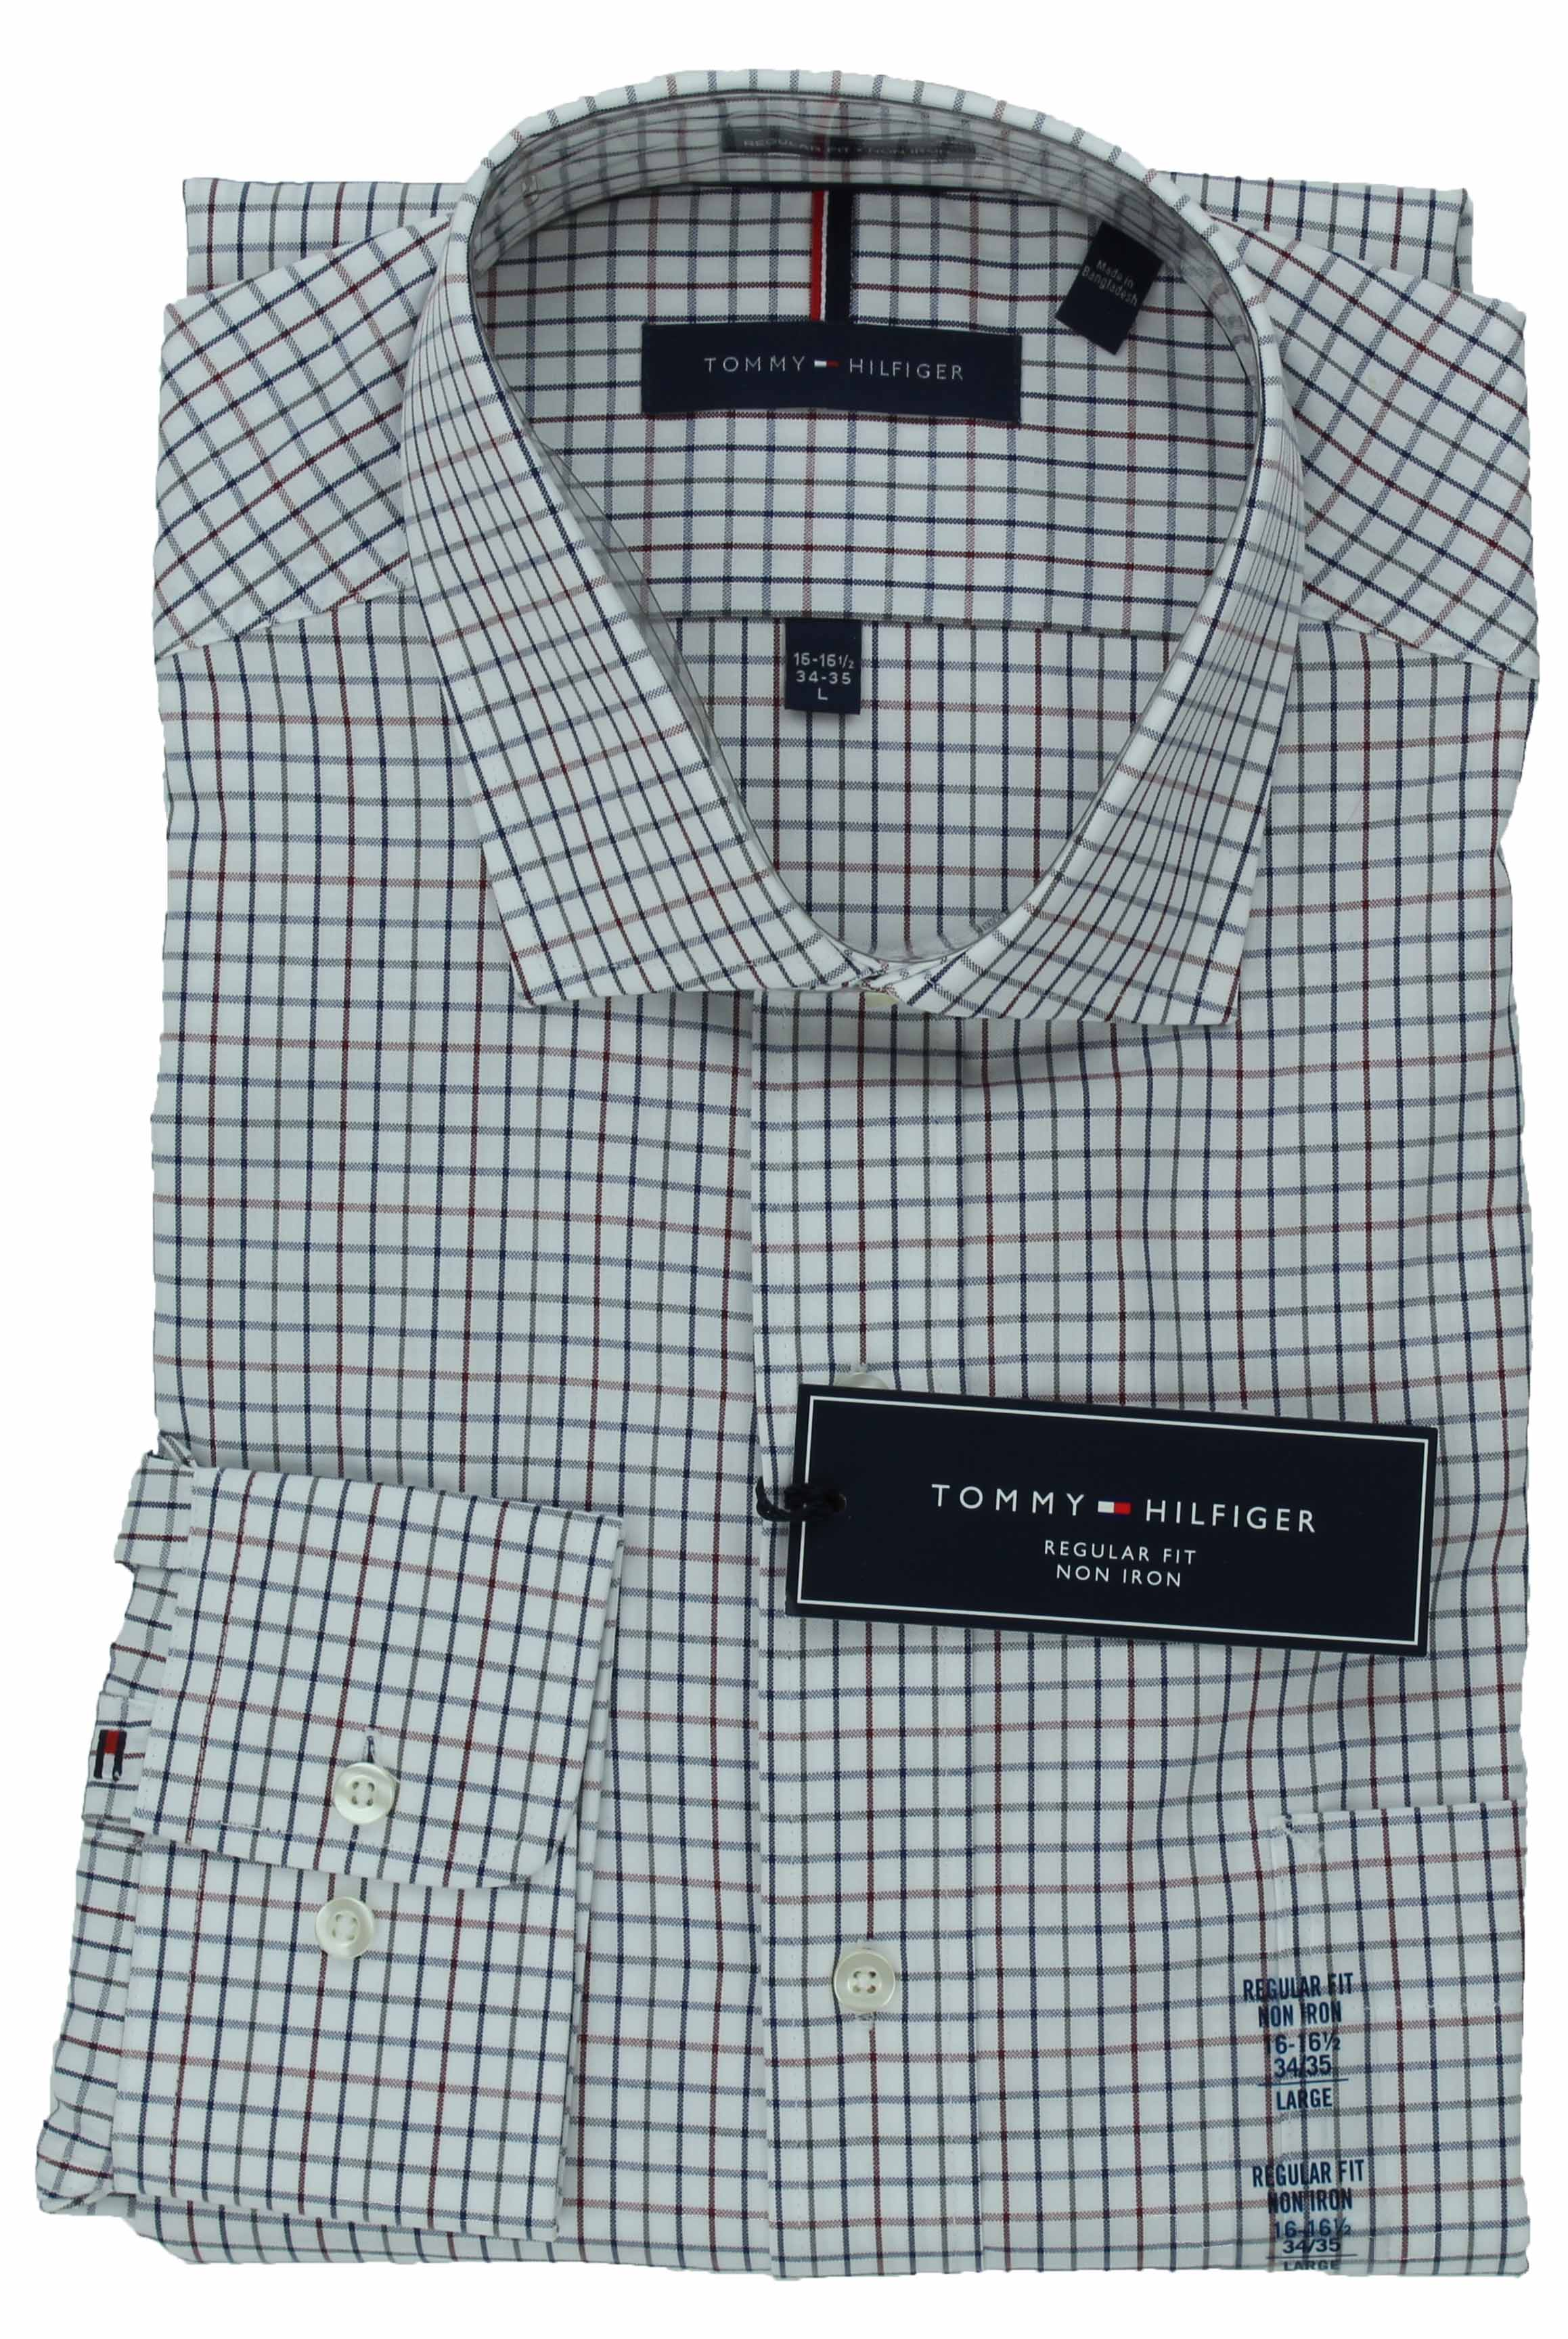 Tommy-Hilfiger-Mens-Long-Sleeve-Regular-Fit-Dress-Shirt miniature 35